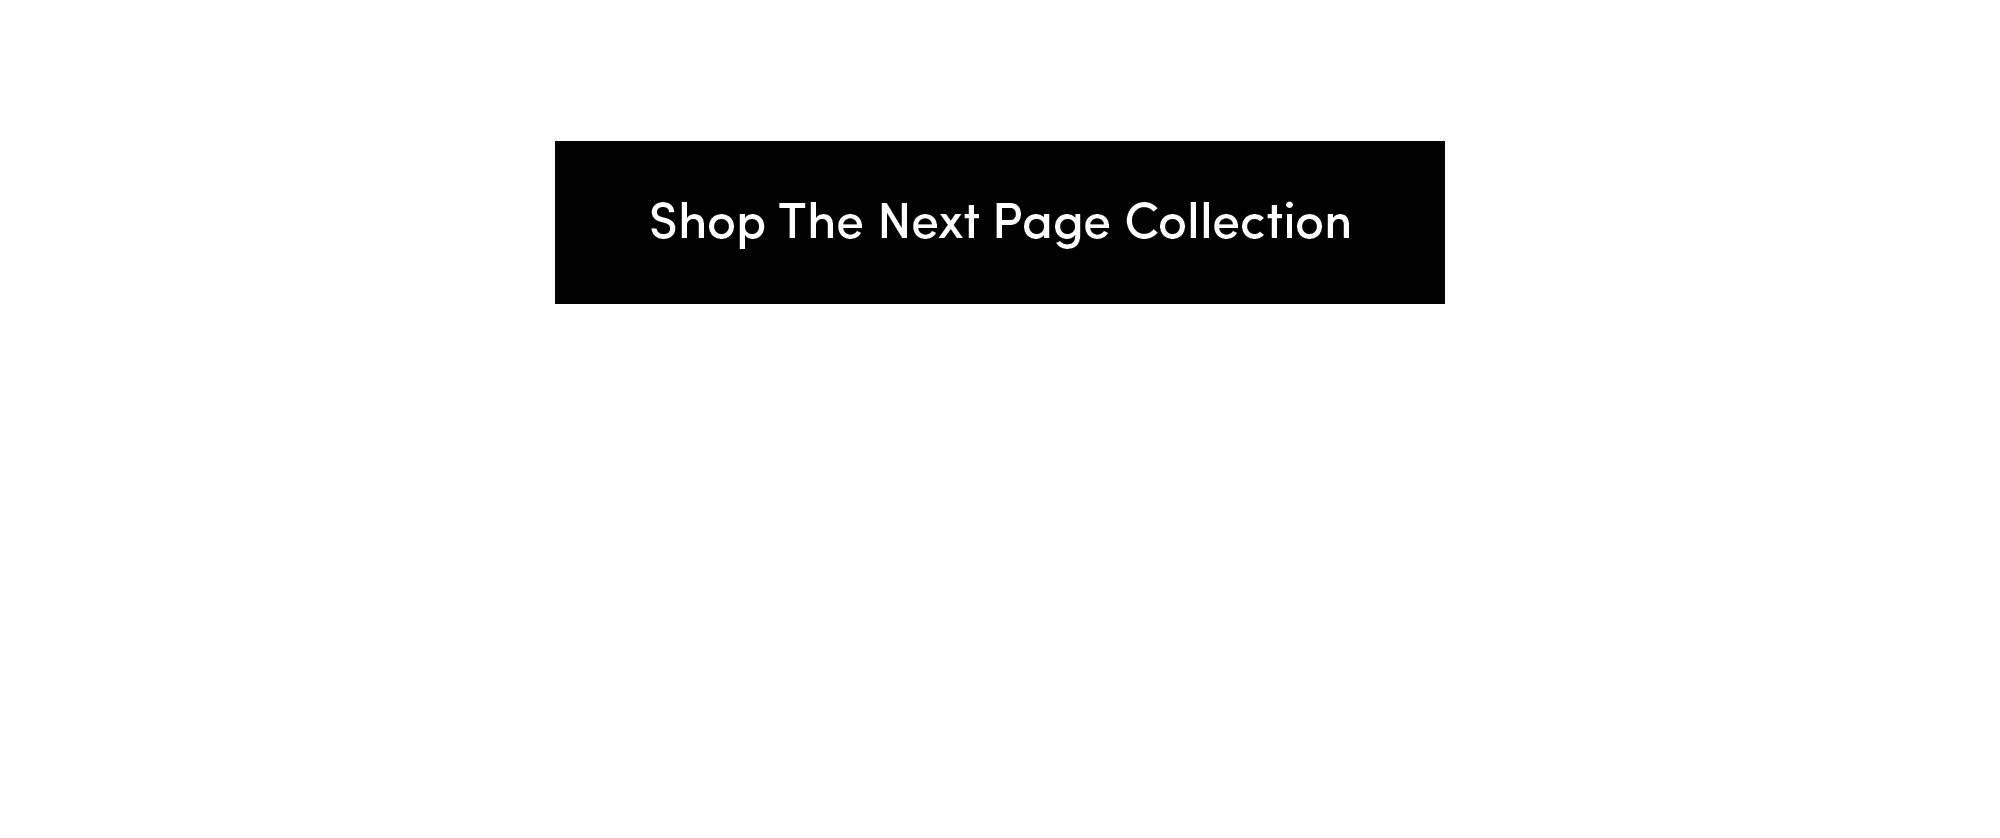 Shop The Next Page Collection